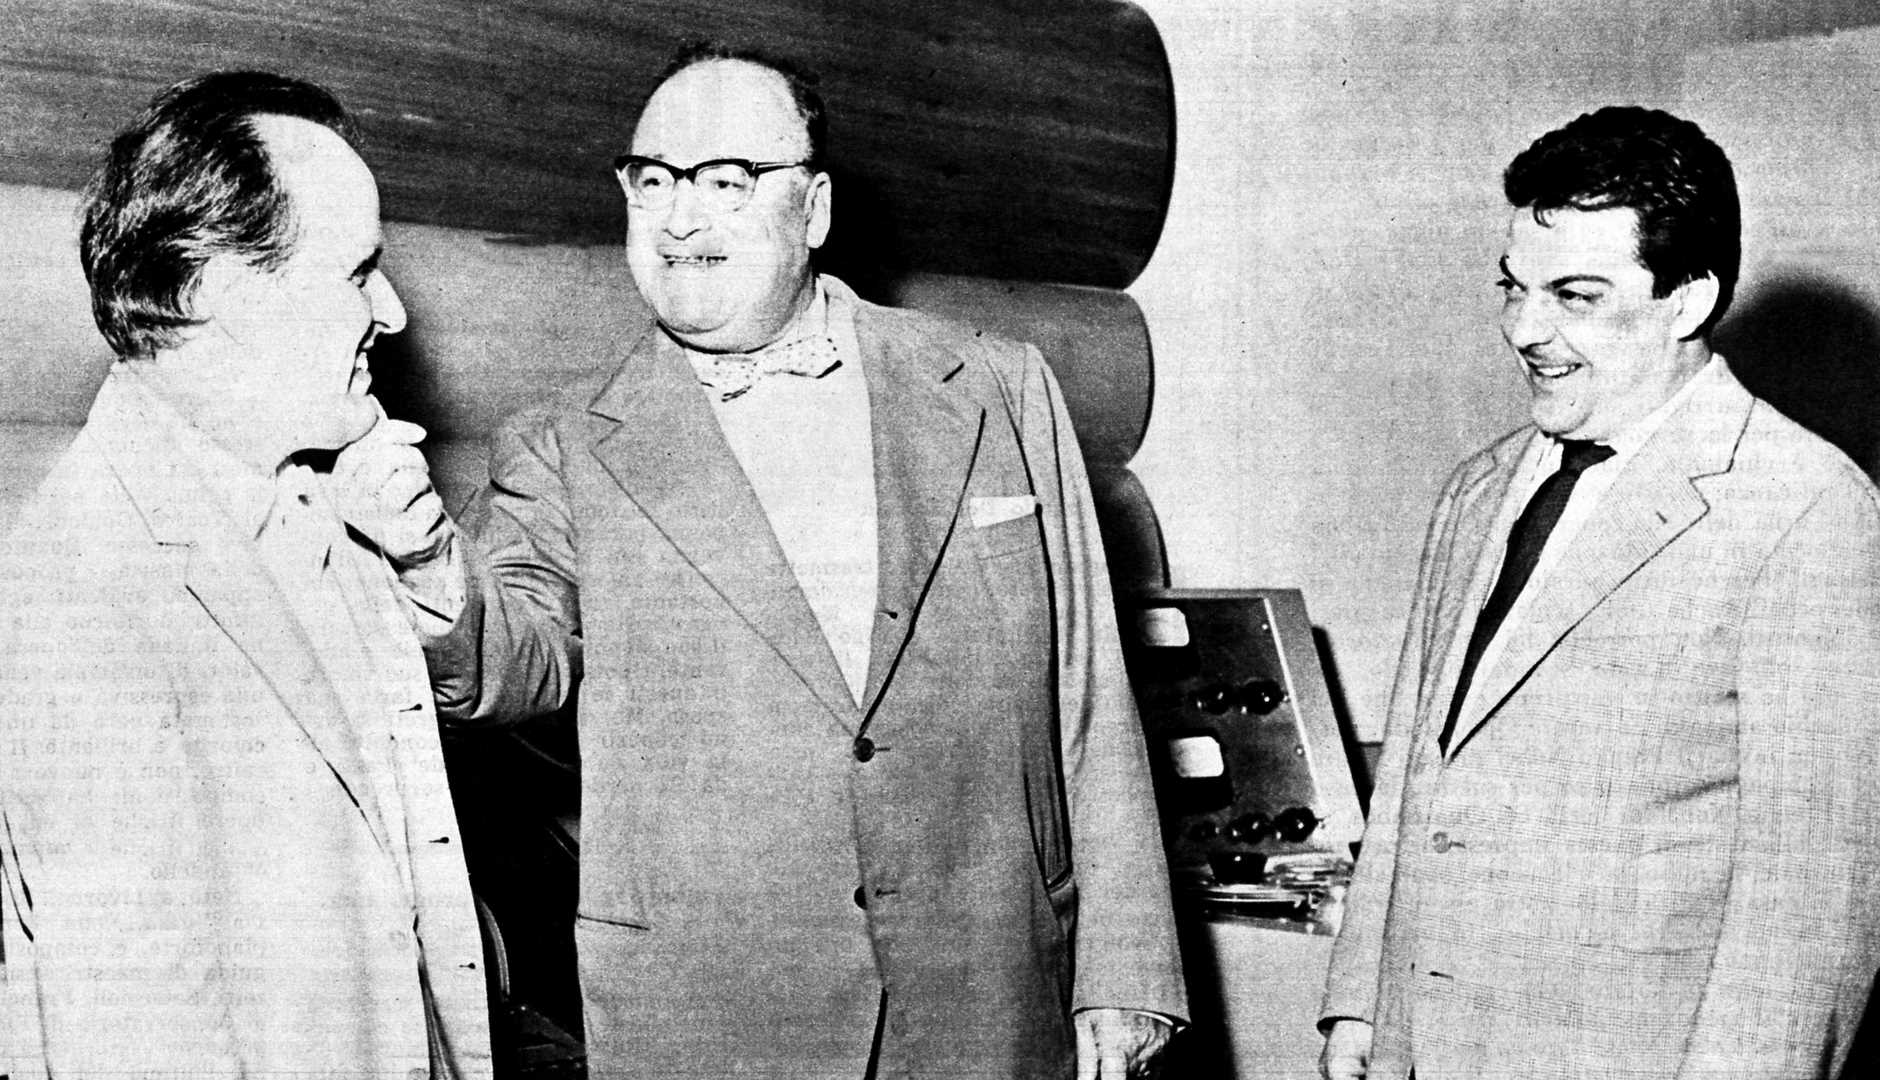 Nino Rota (left) in 1963